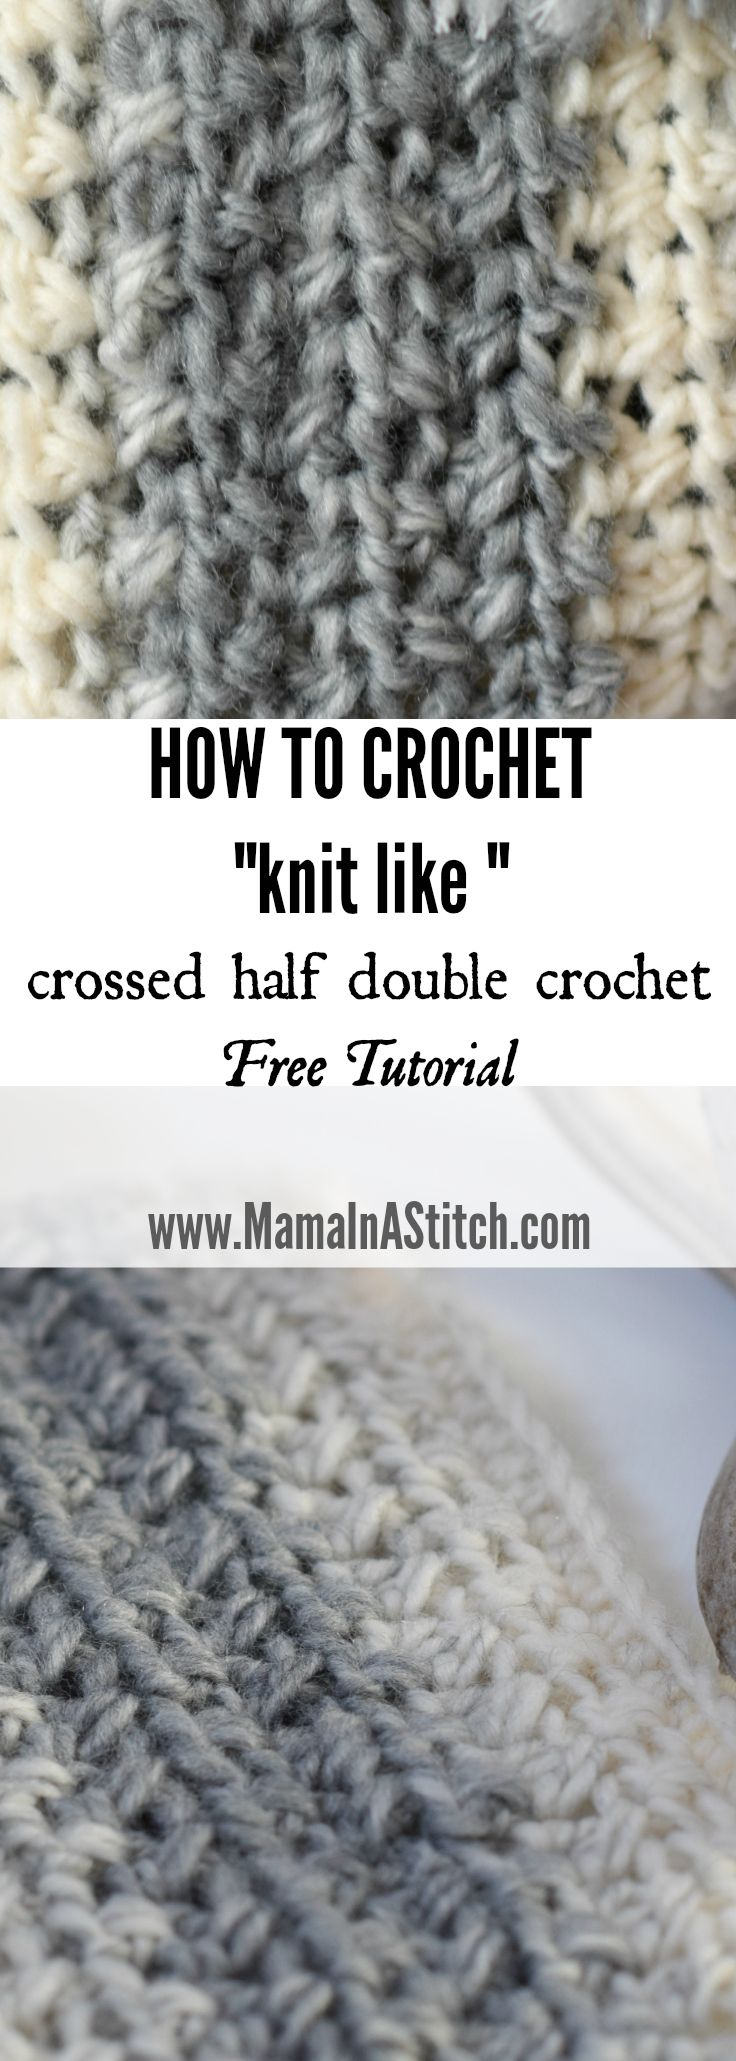 17 Best images about Cool things to crochet on Pinterest Crochet scarfs, Cr...